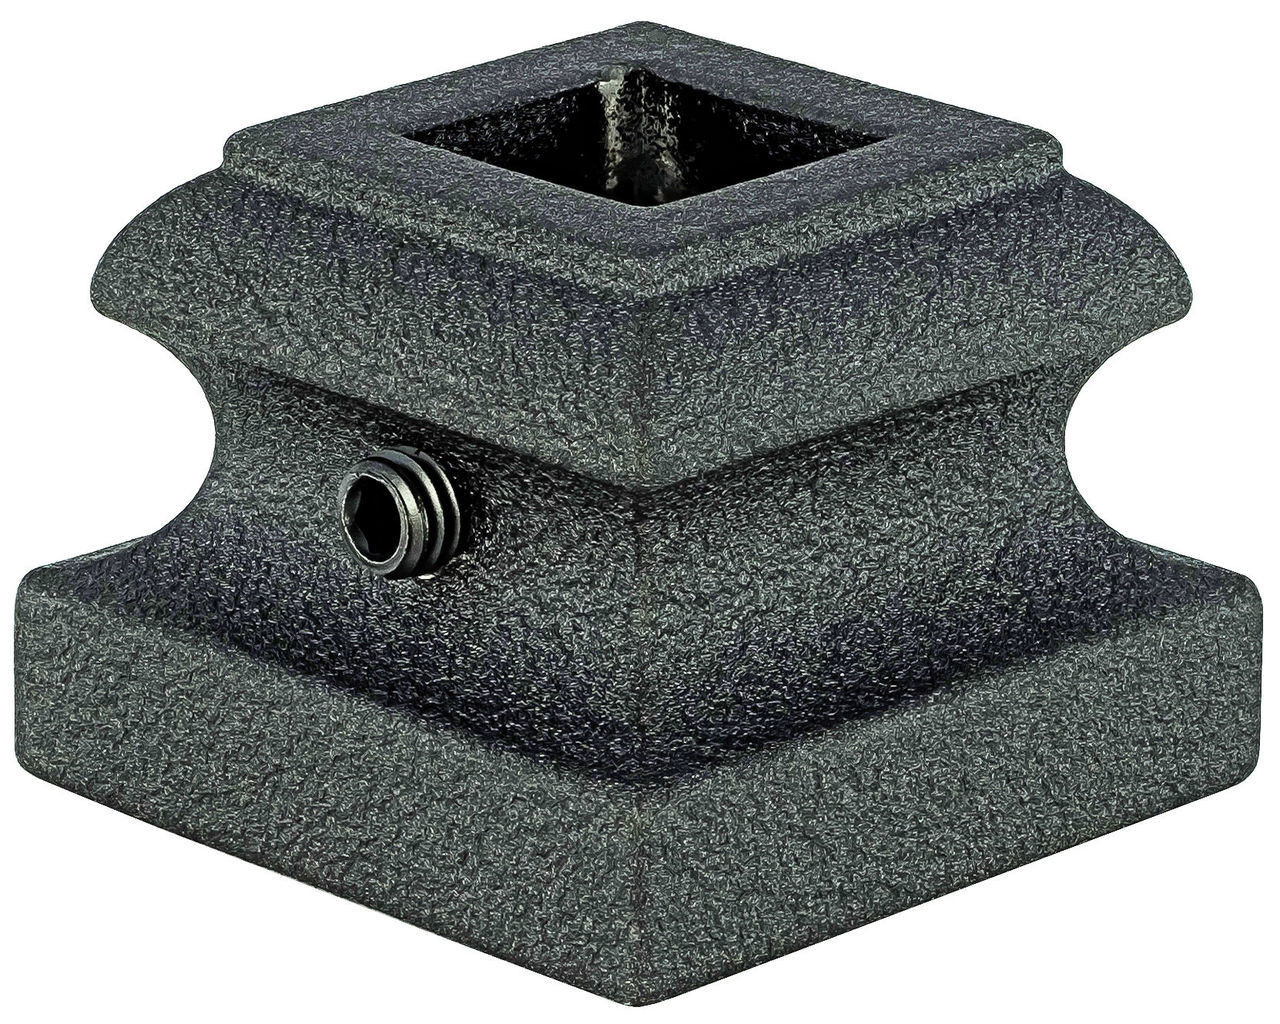 """FI3101-2 Base Shoe for 9-1/16"""" Balusters (Shown in Silver Black)"""